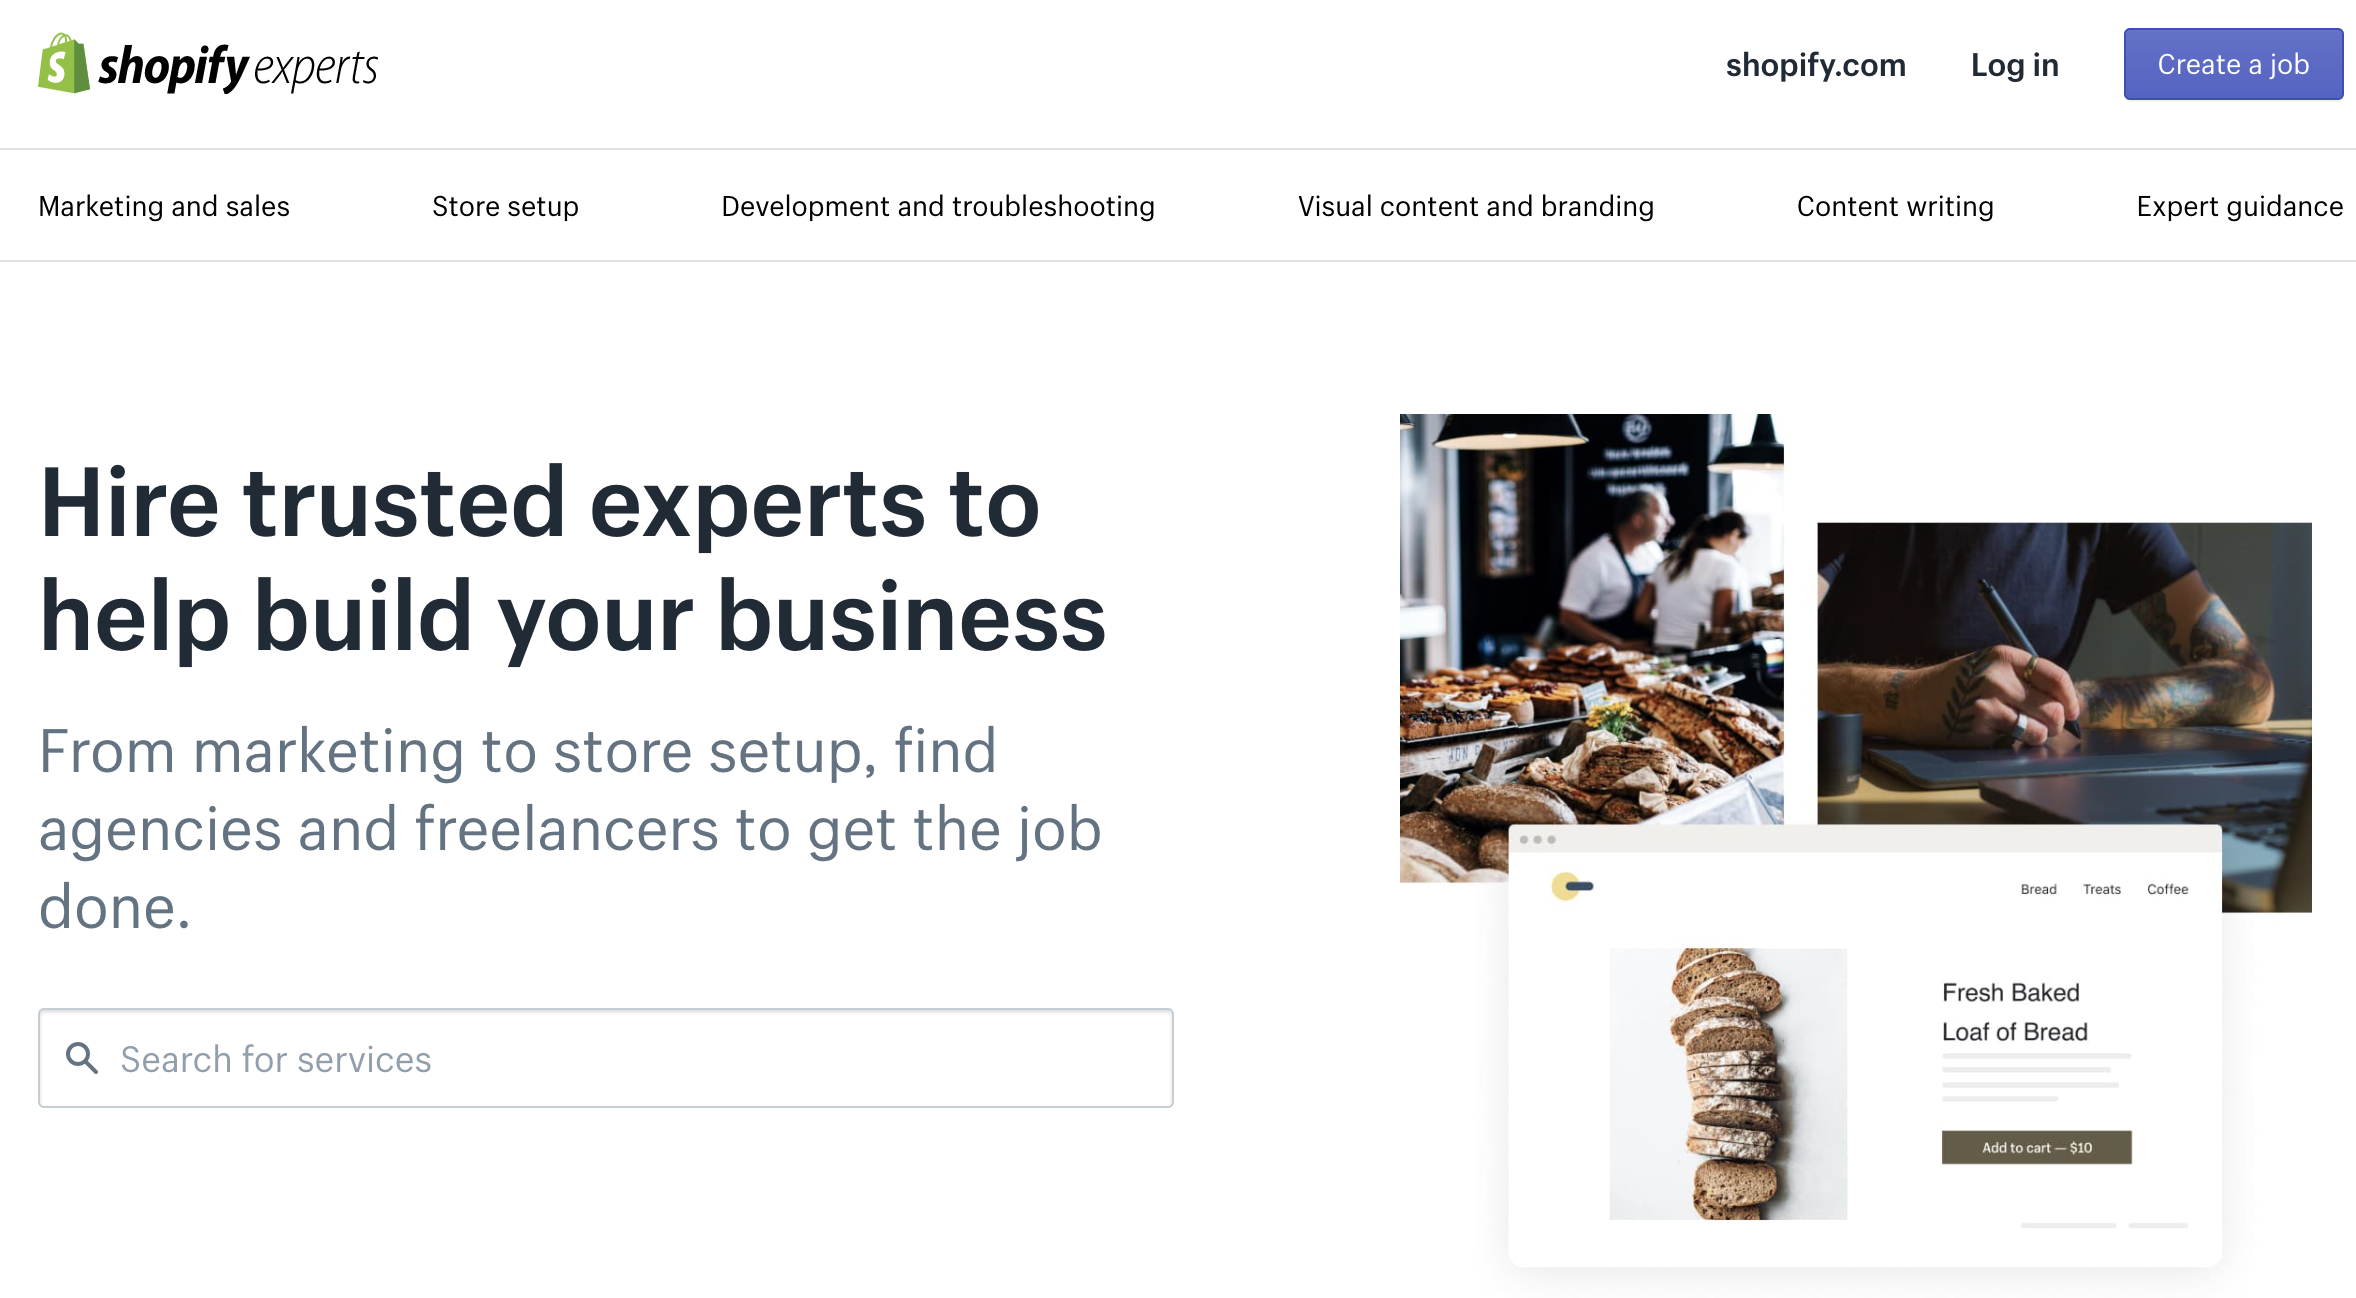 shopify experts homepage